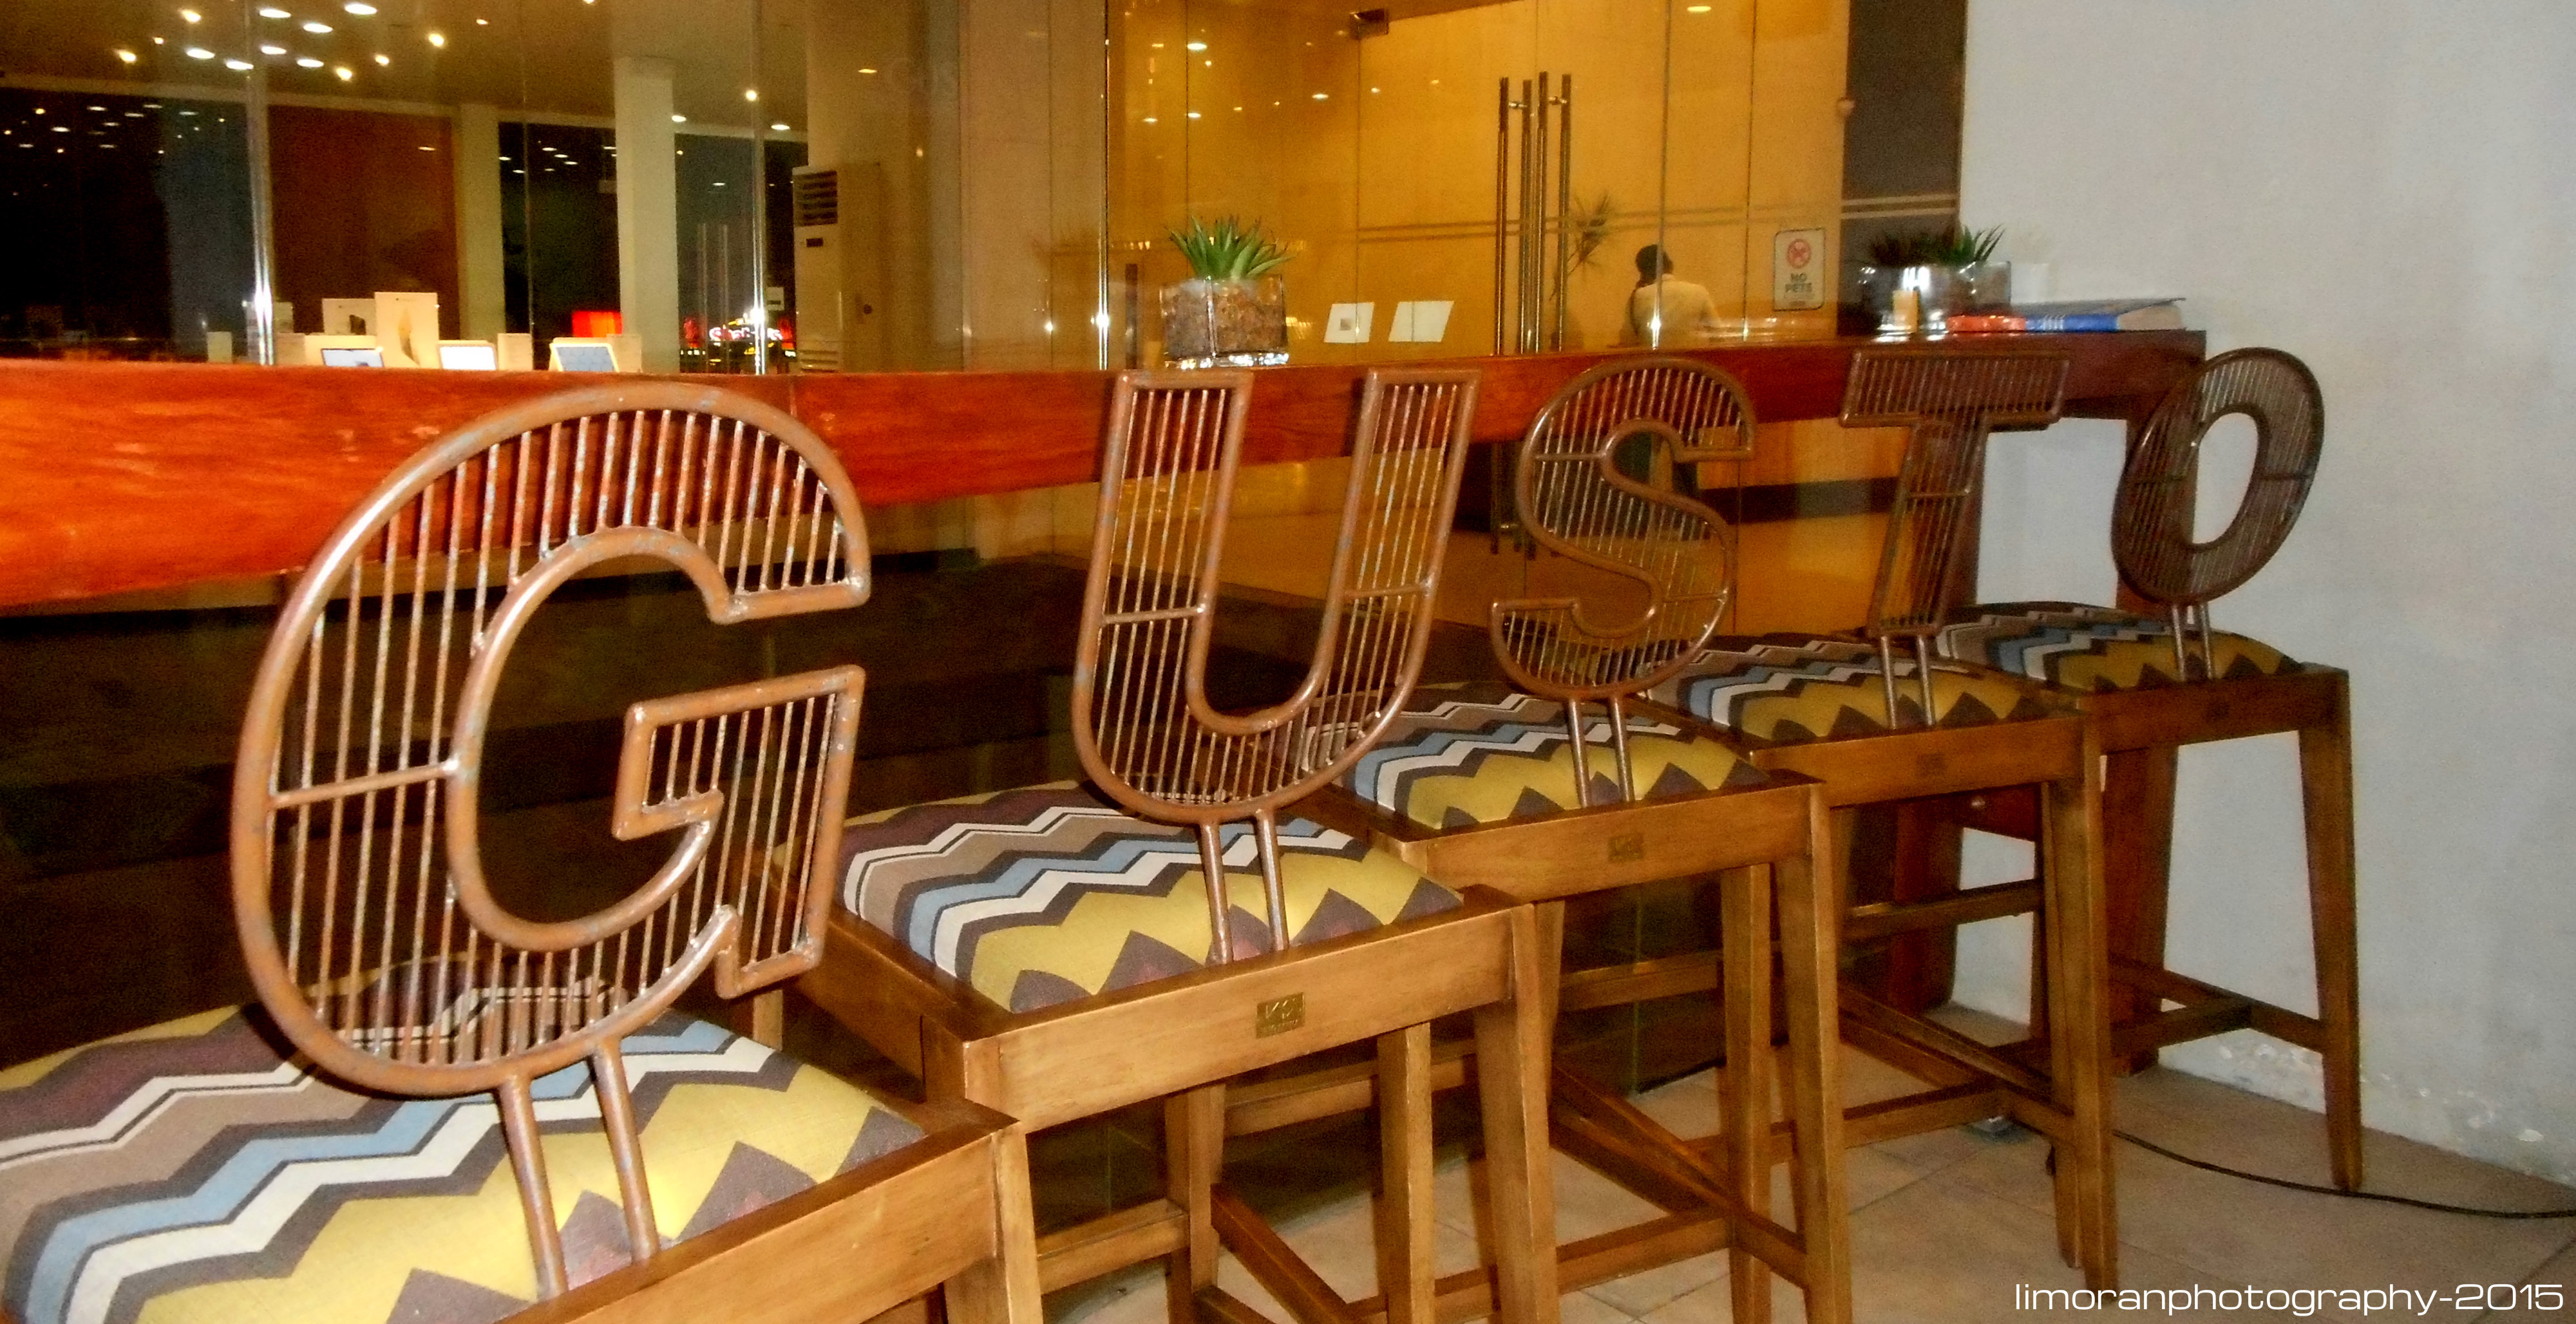 Personalized Gusto chairs.